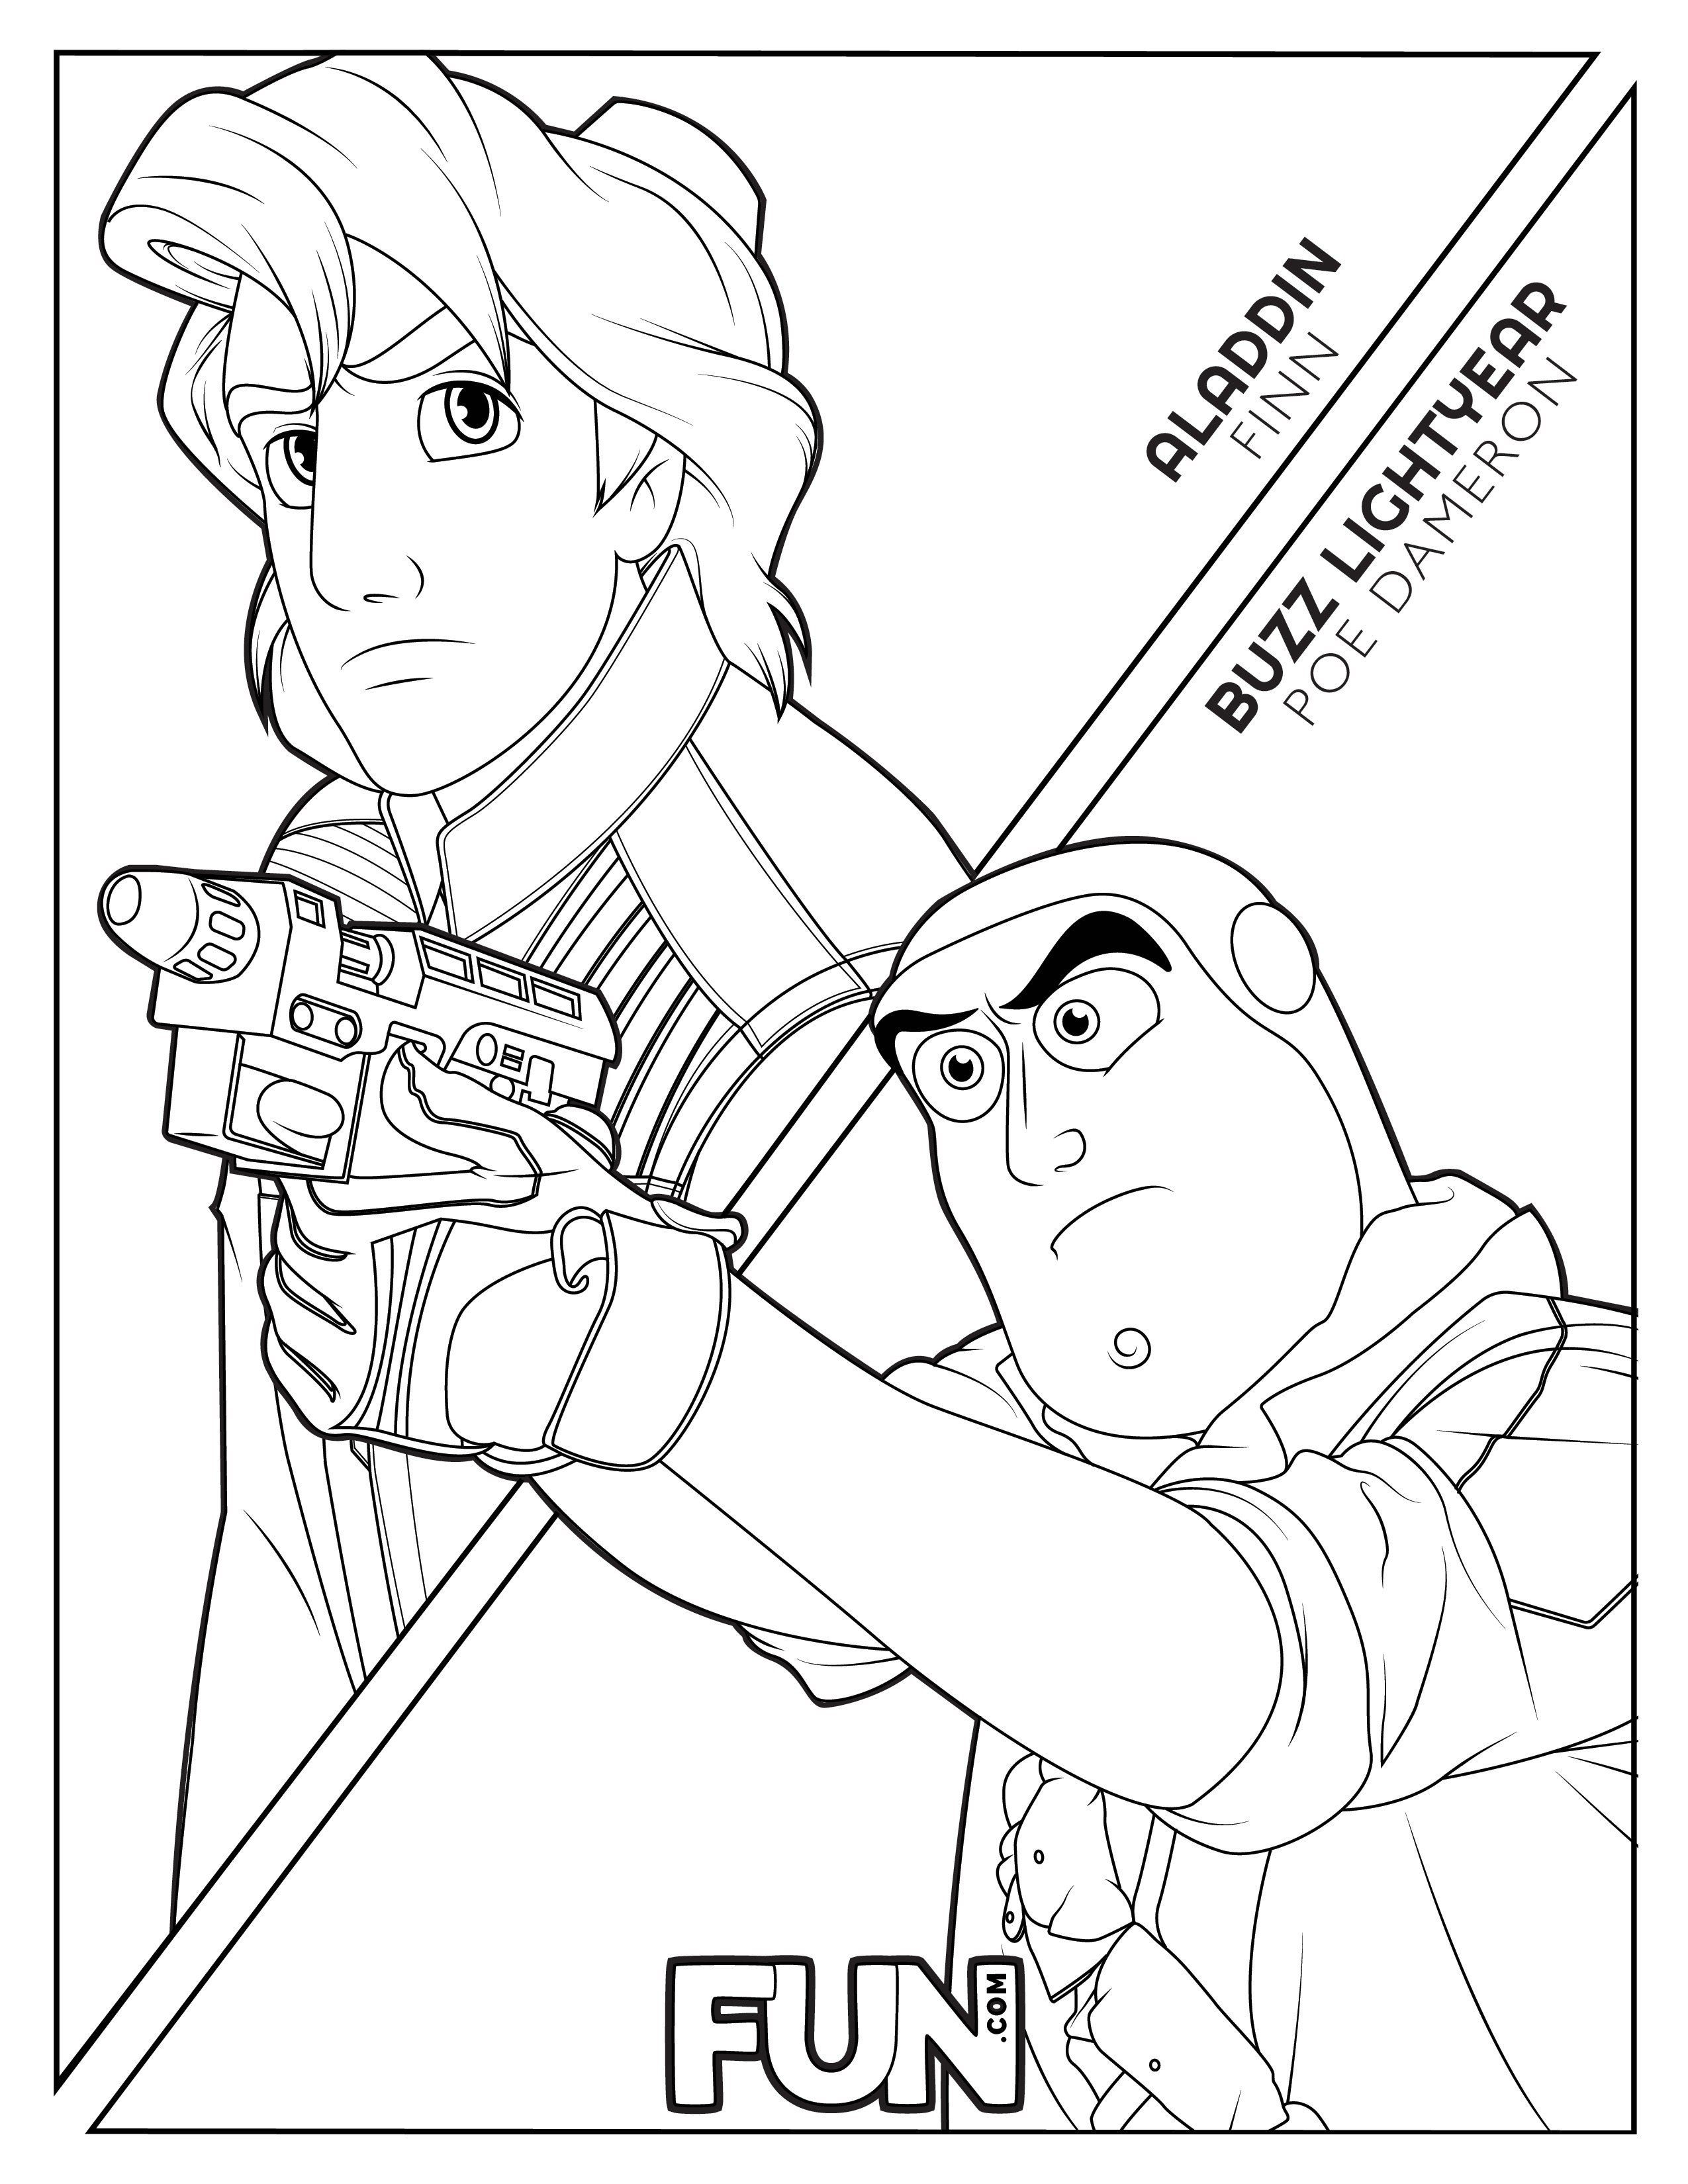 Aladdin Finn and Buzz Lightyear Poe Coloring Page